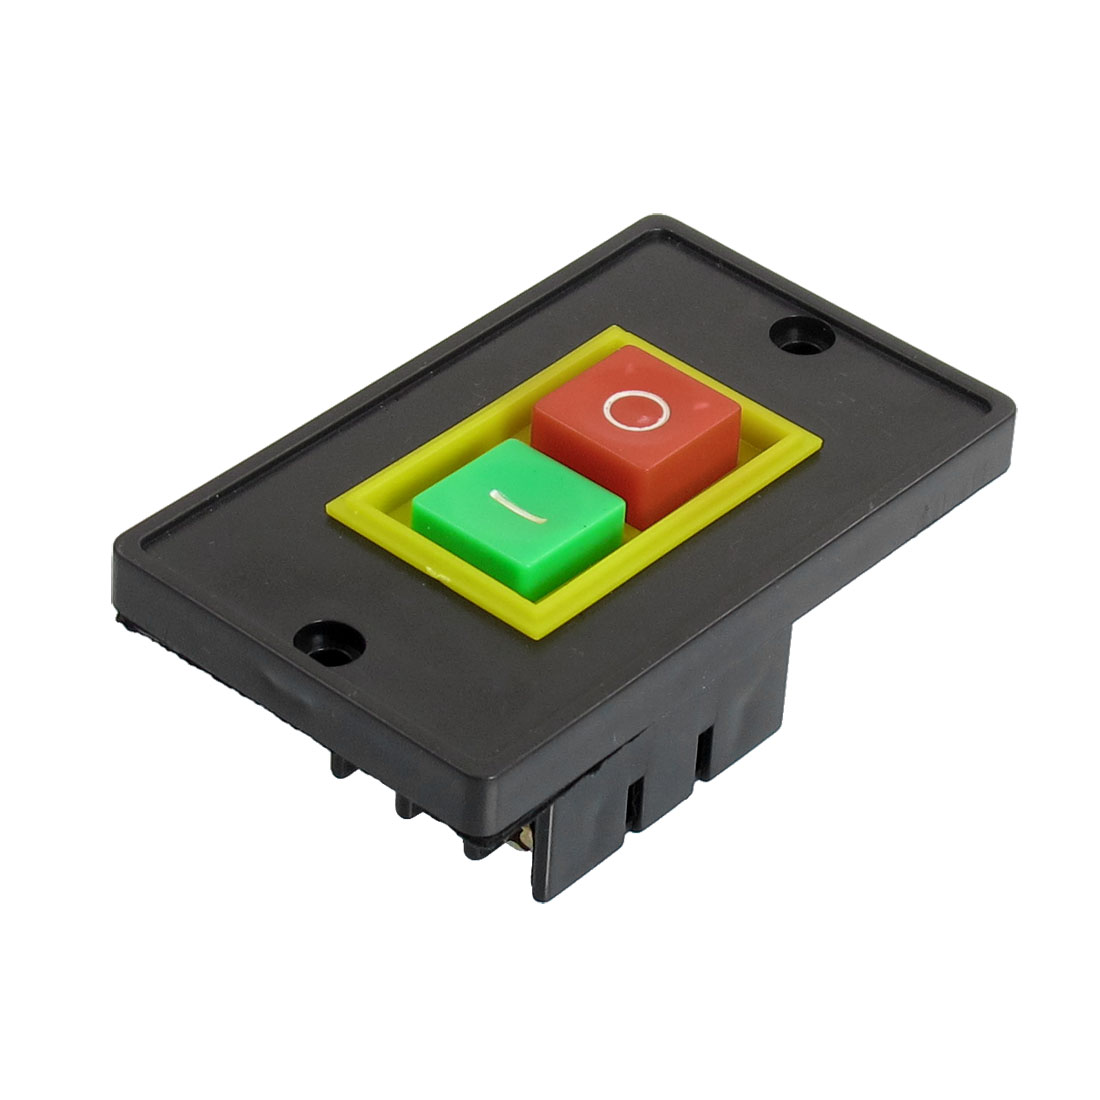 QCS1 AC 380V 2KW Red Green I/O Start Stop Push Button Switch